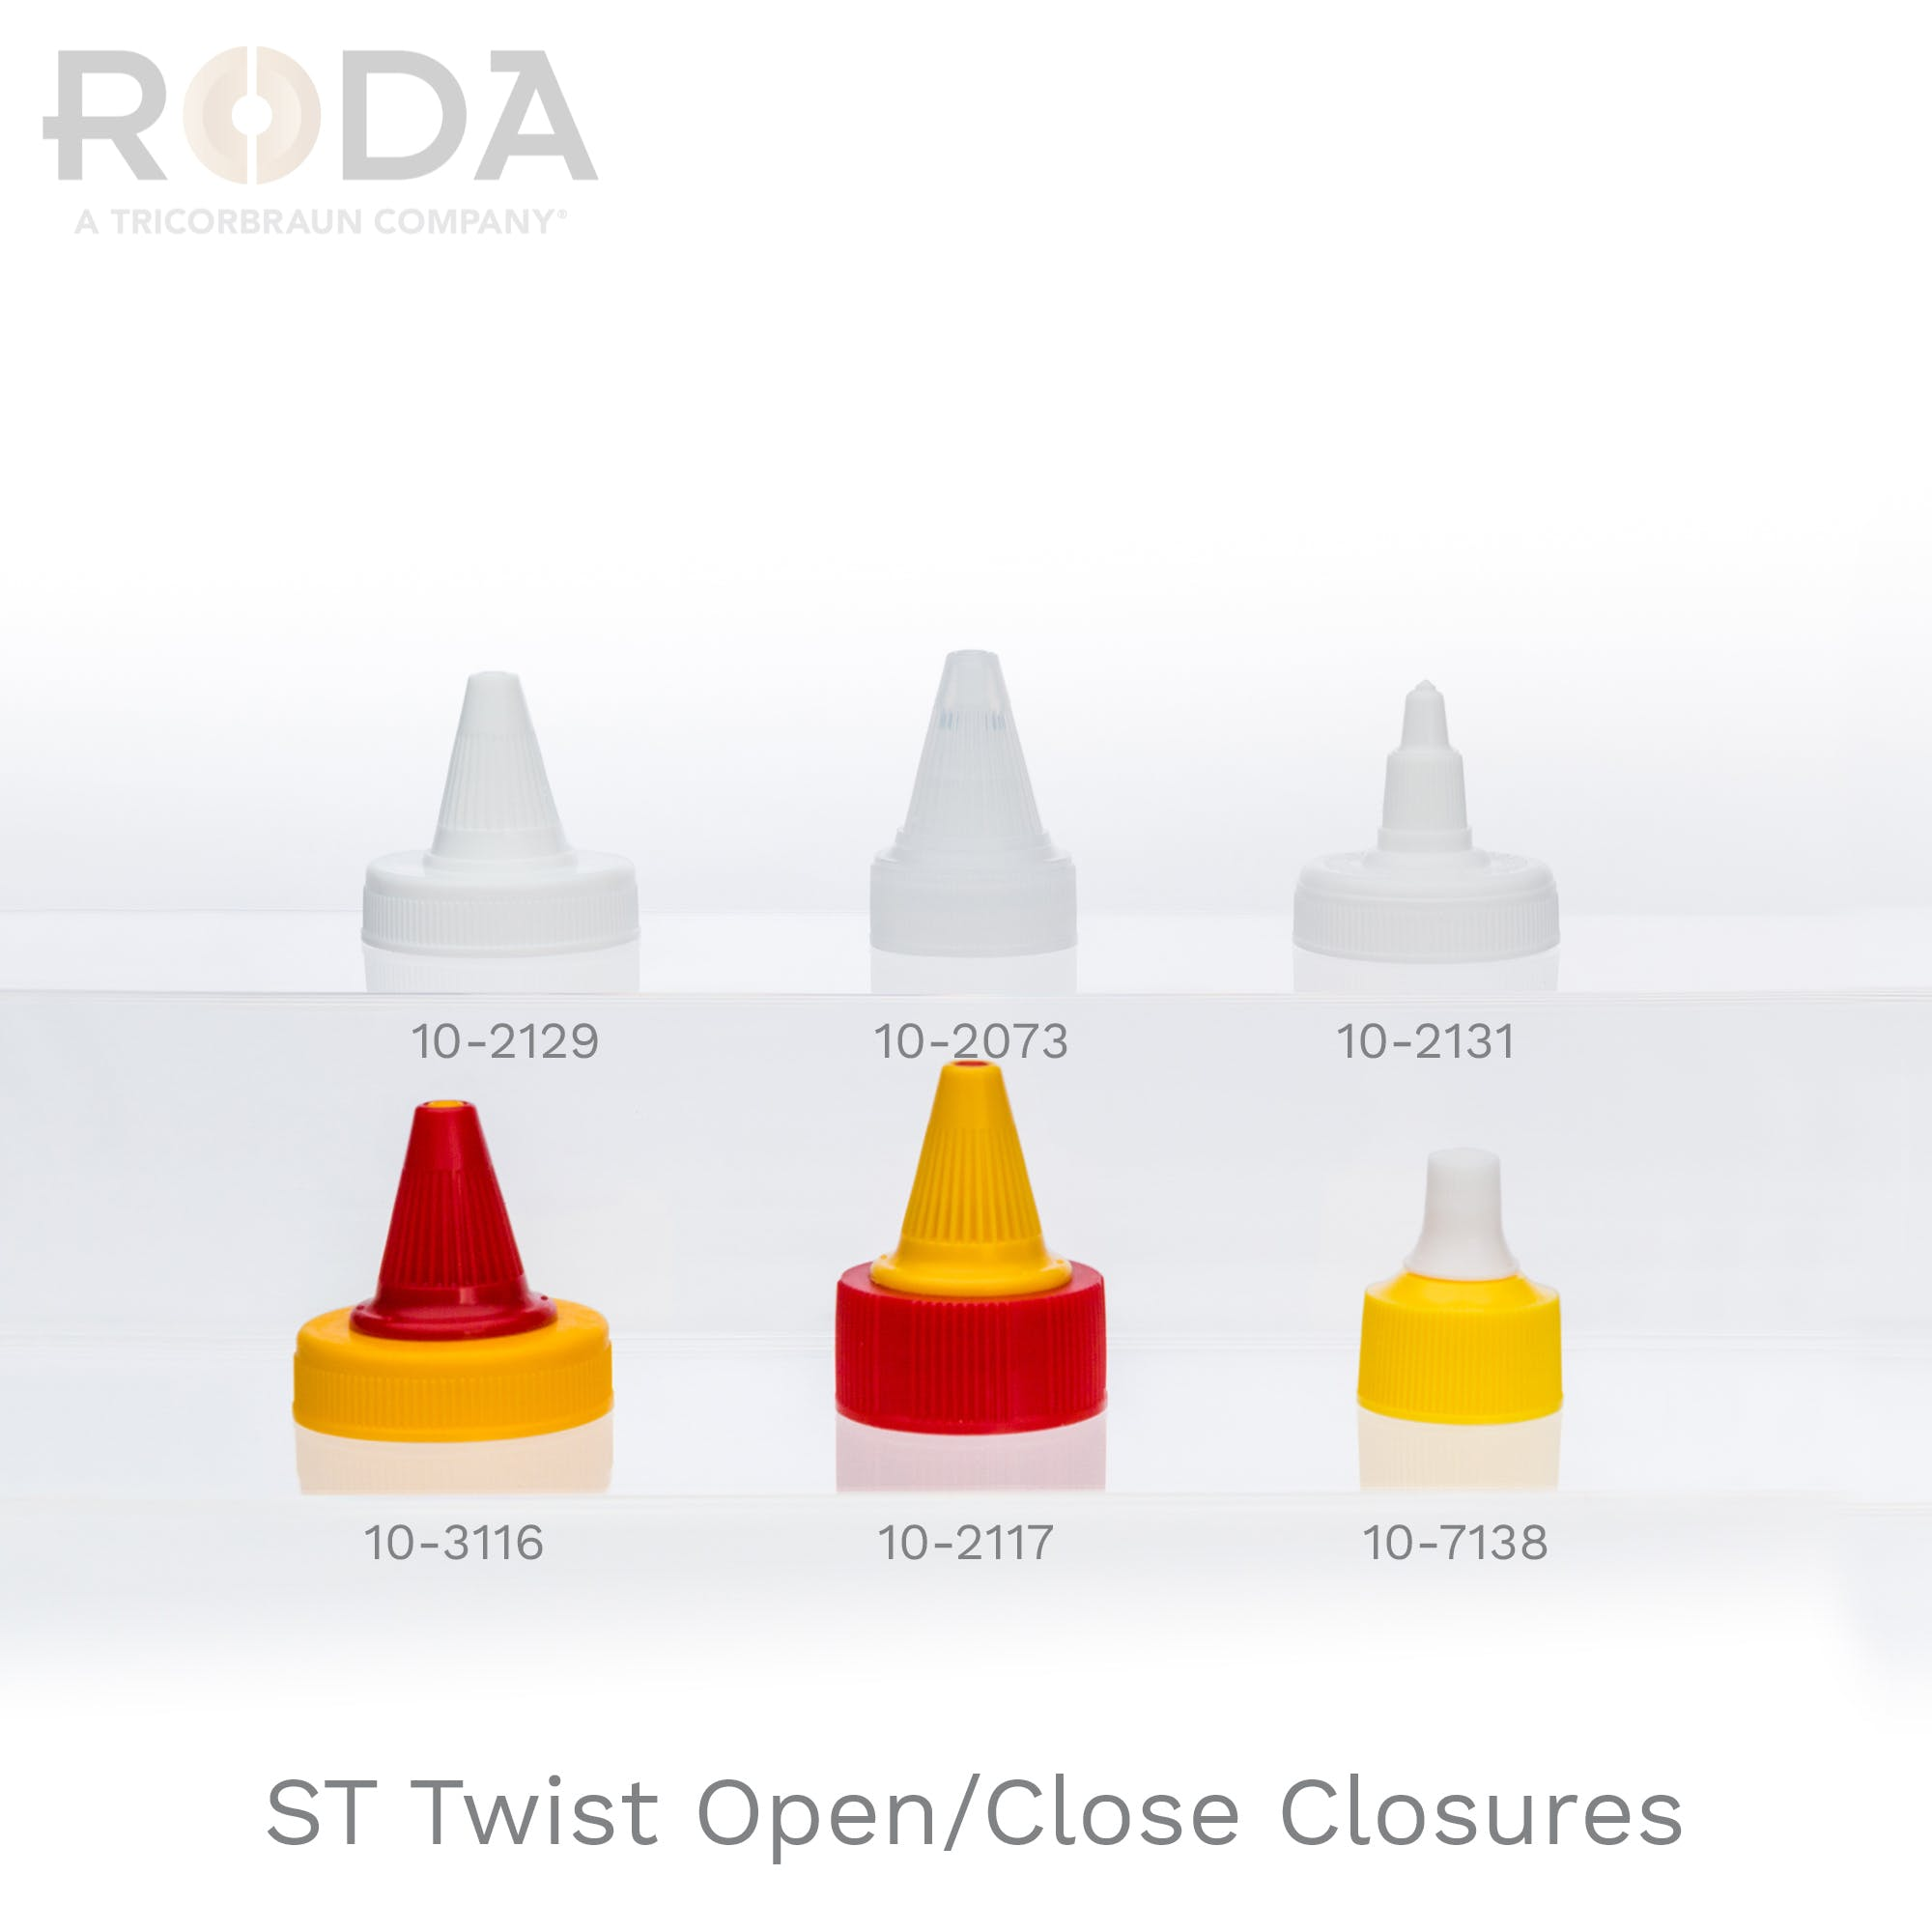 ST Twist Open/Close Closures